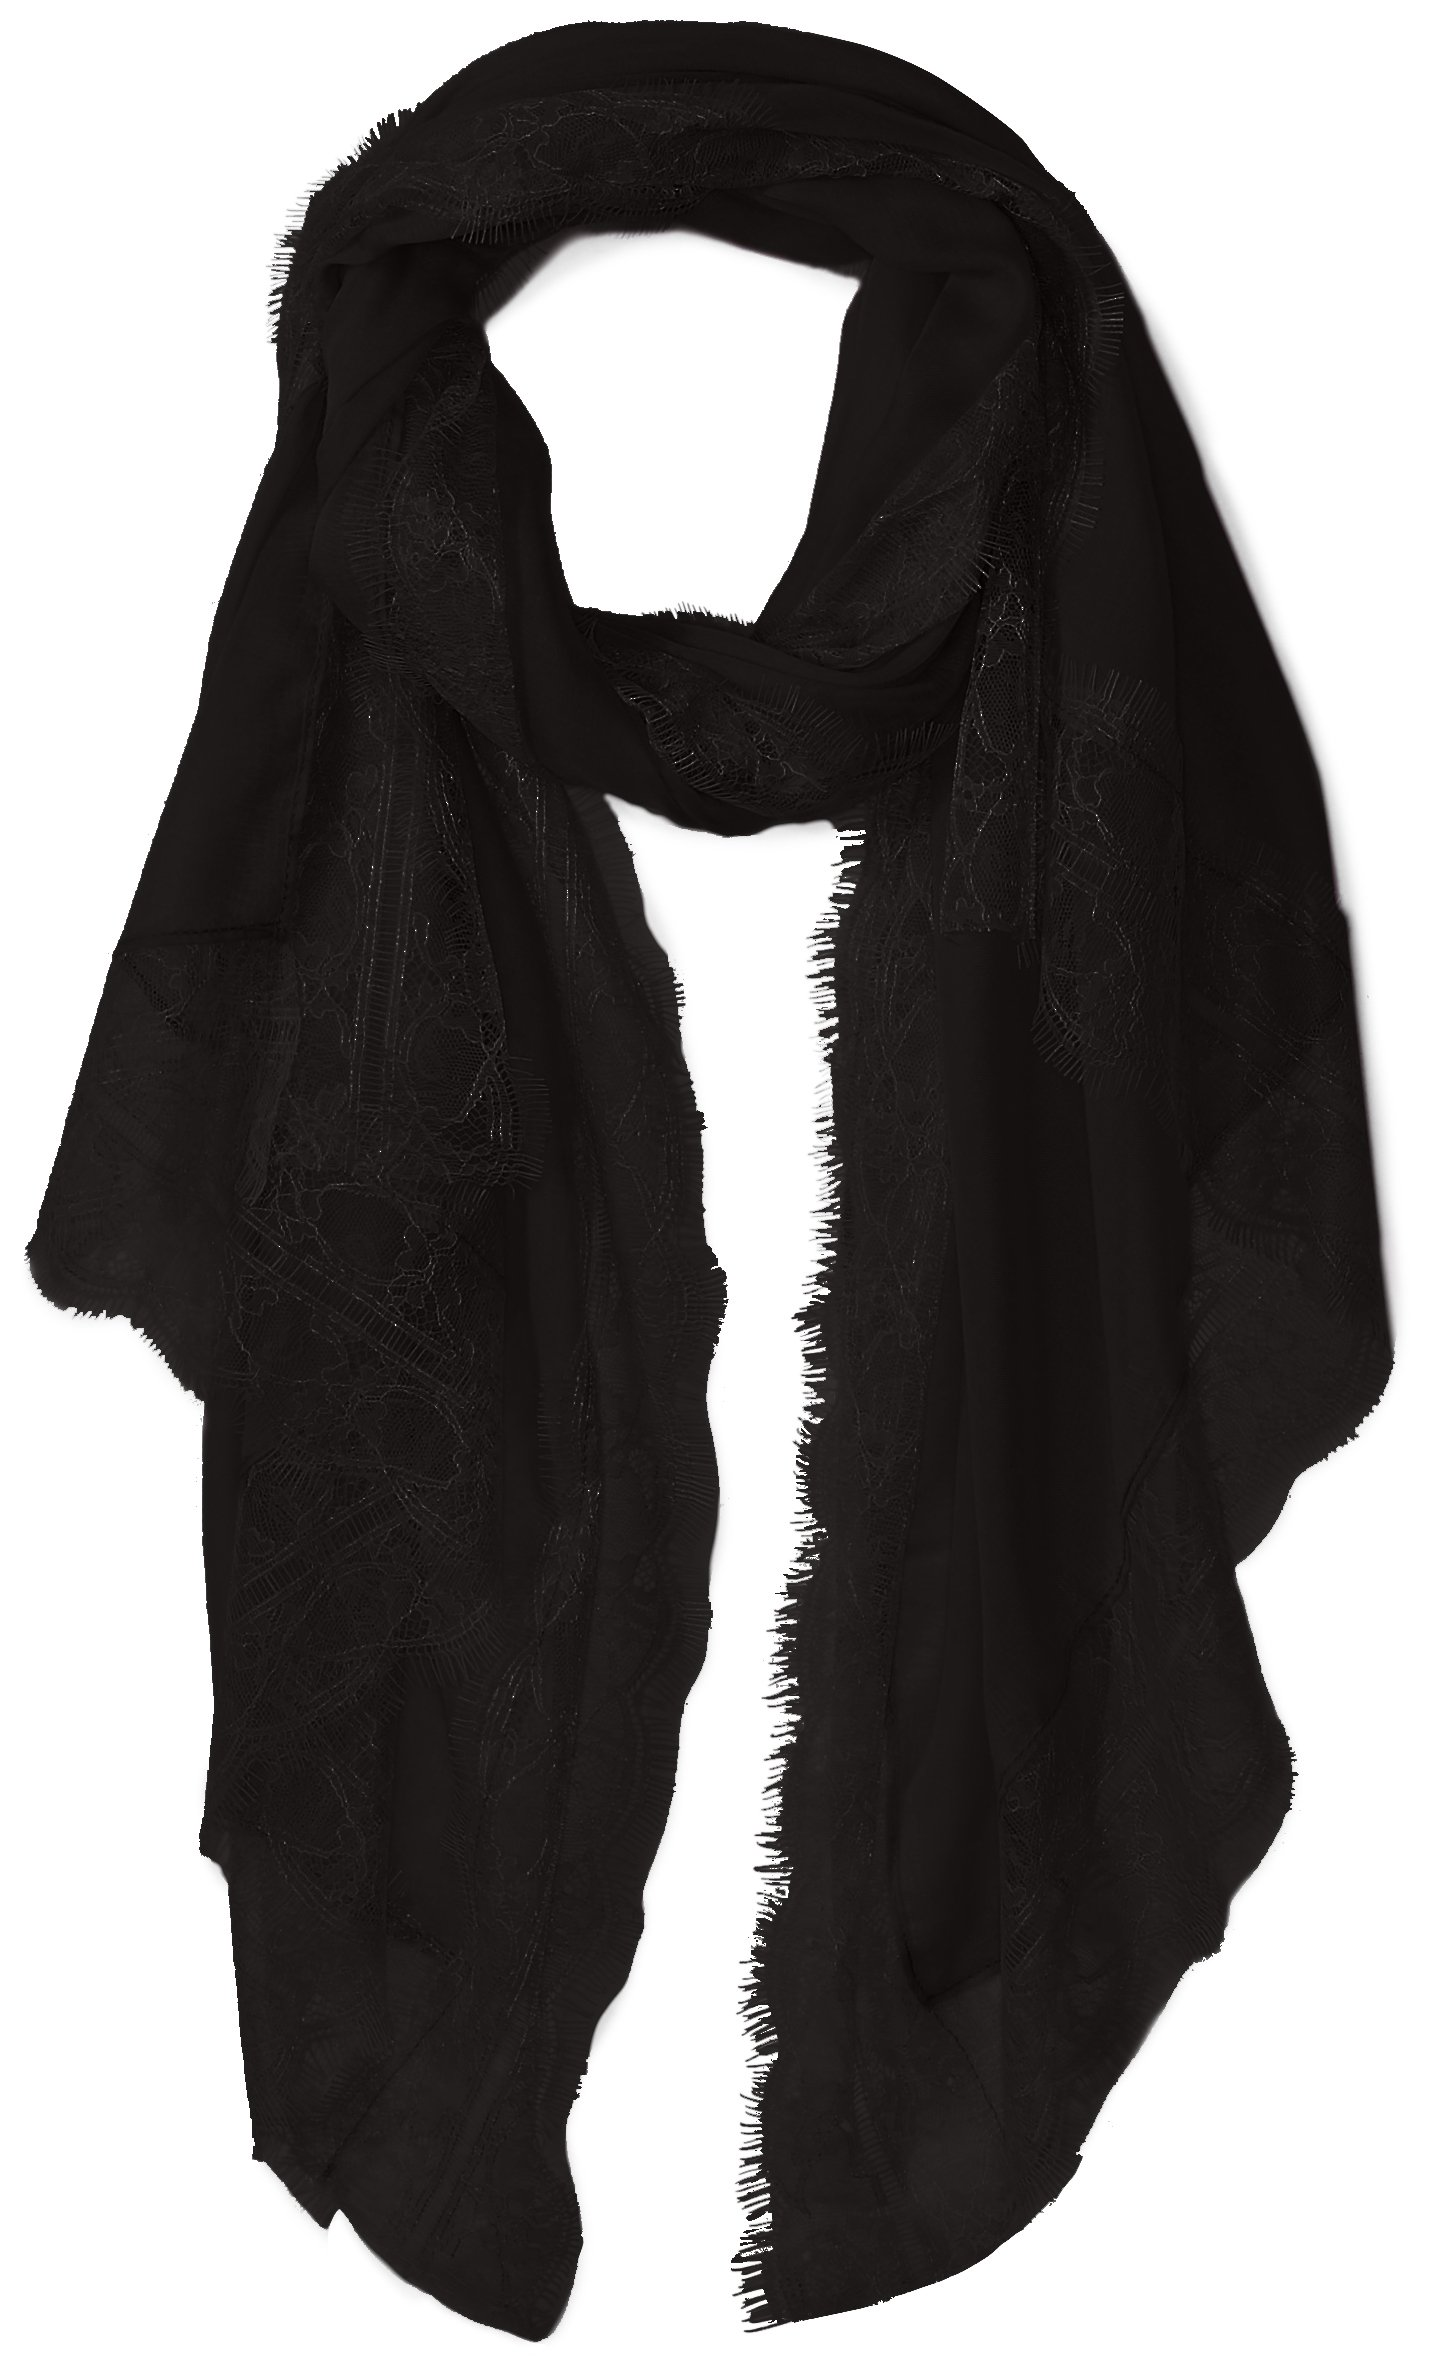 Orchid Row's Lace Trim Lightweight Travel Scarf Black